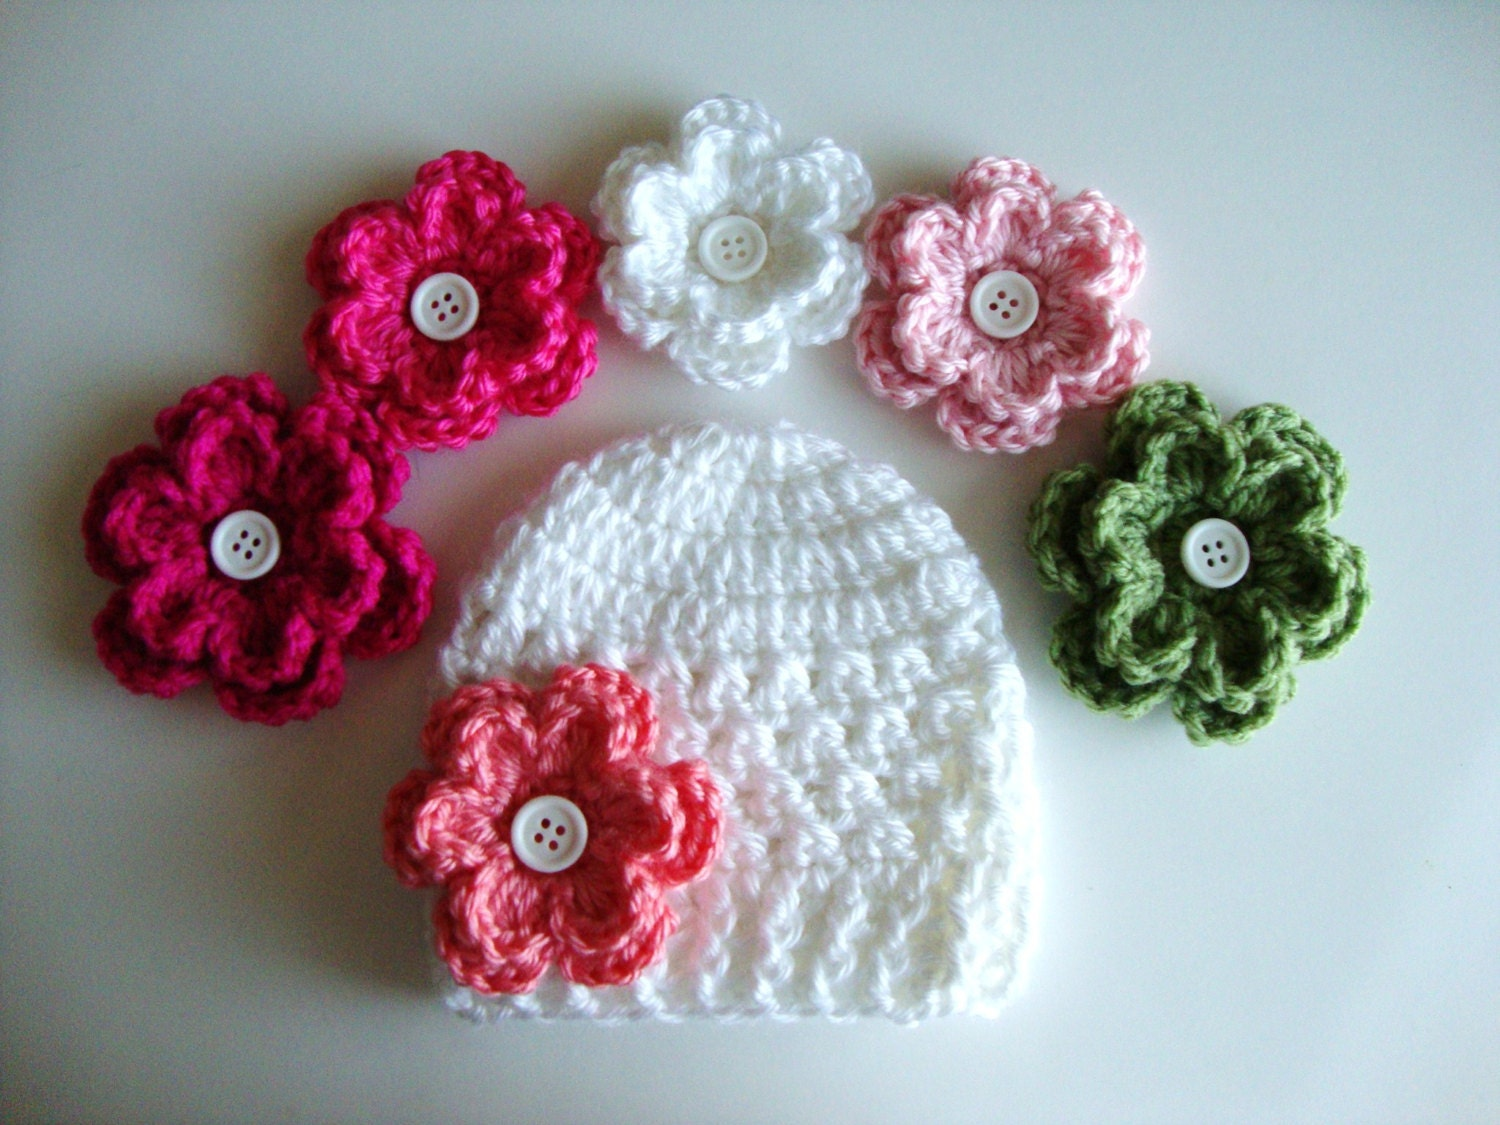 Pattern Crochet Hat With Flower : Baby Girl Crochet Flower Hat Pattern Preemie up to 12 months